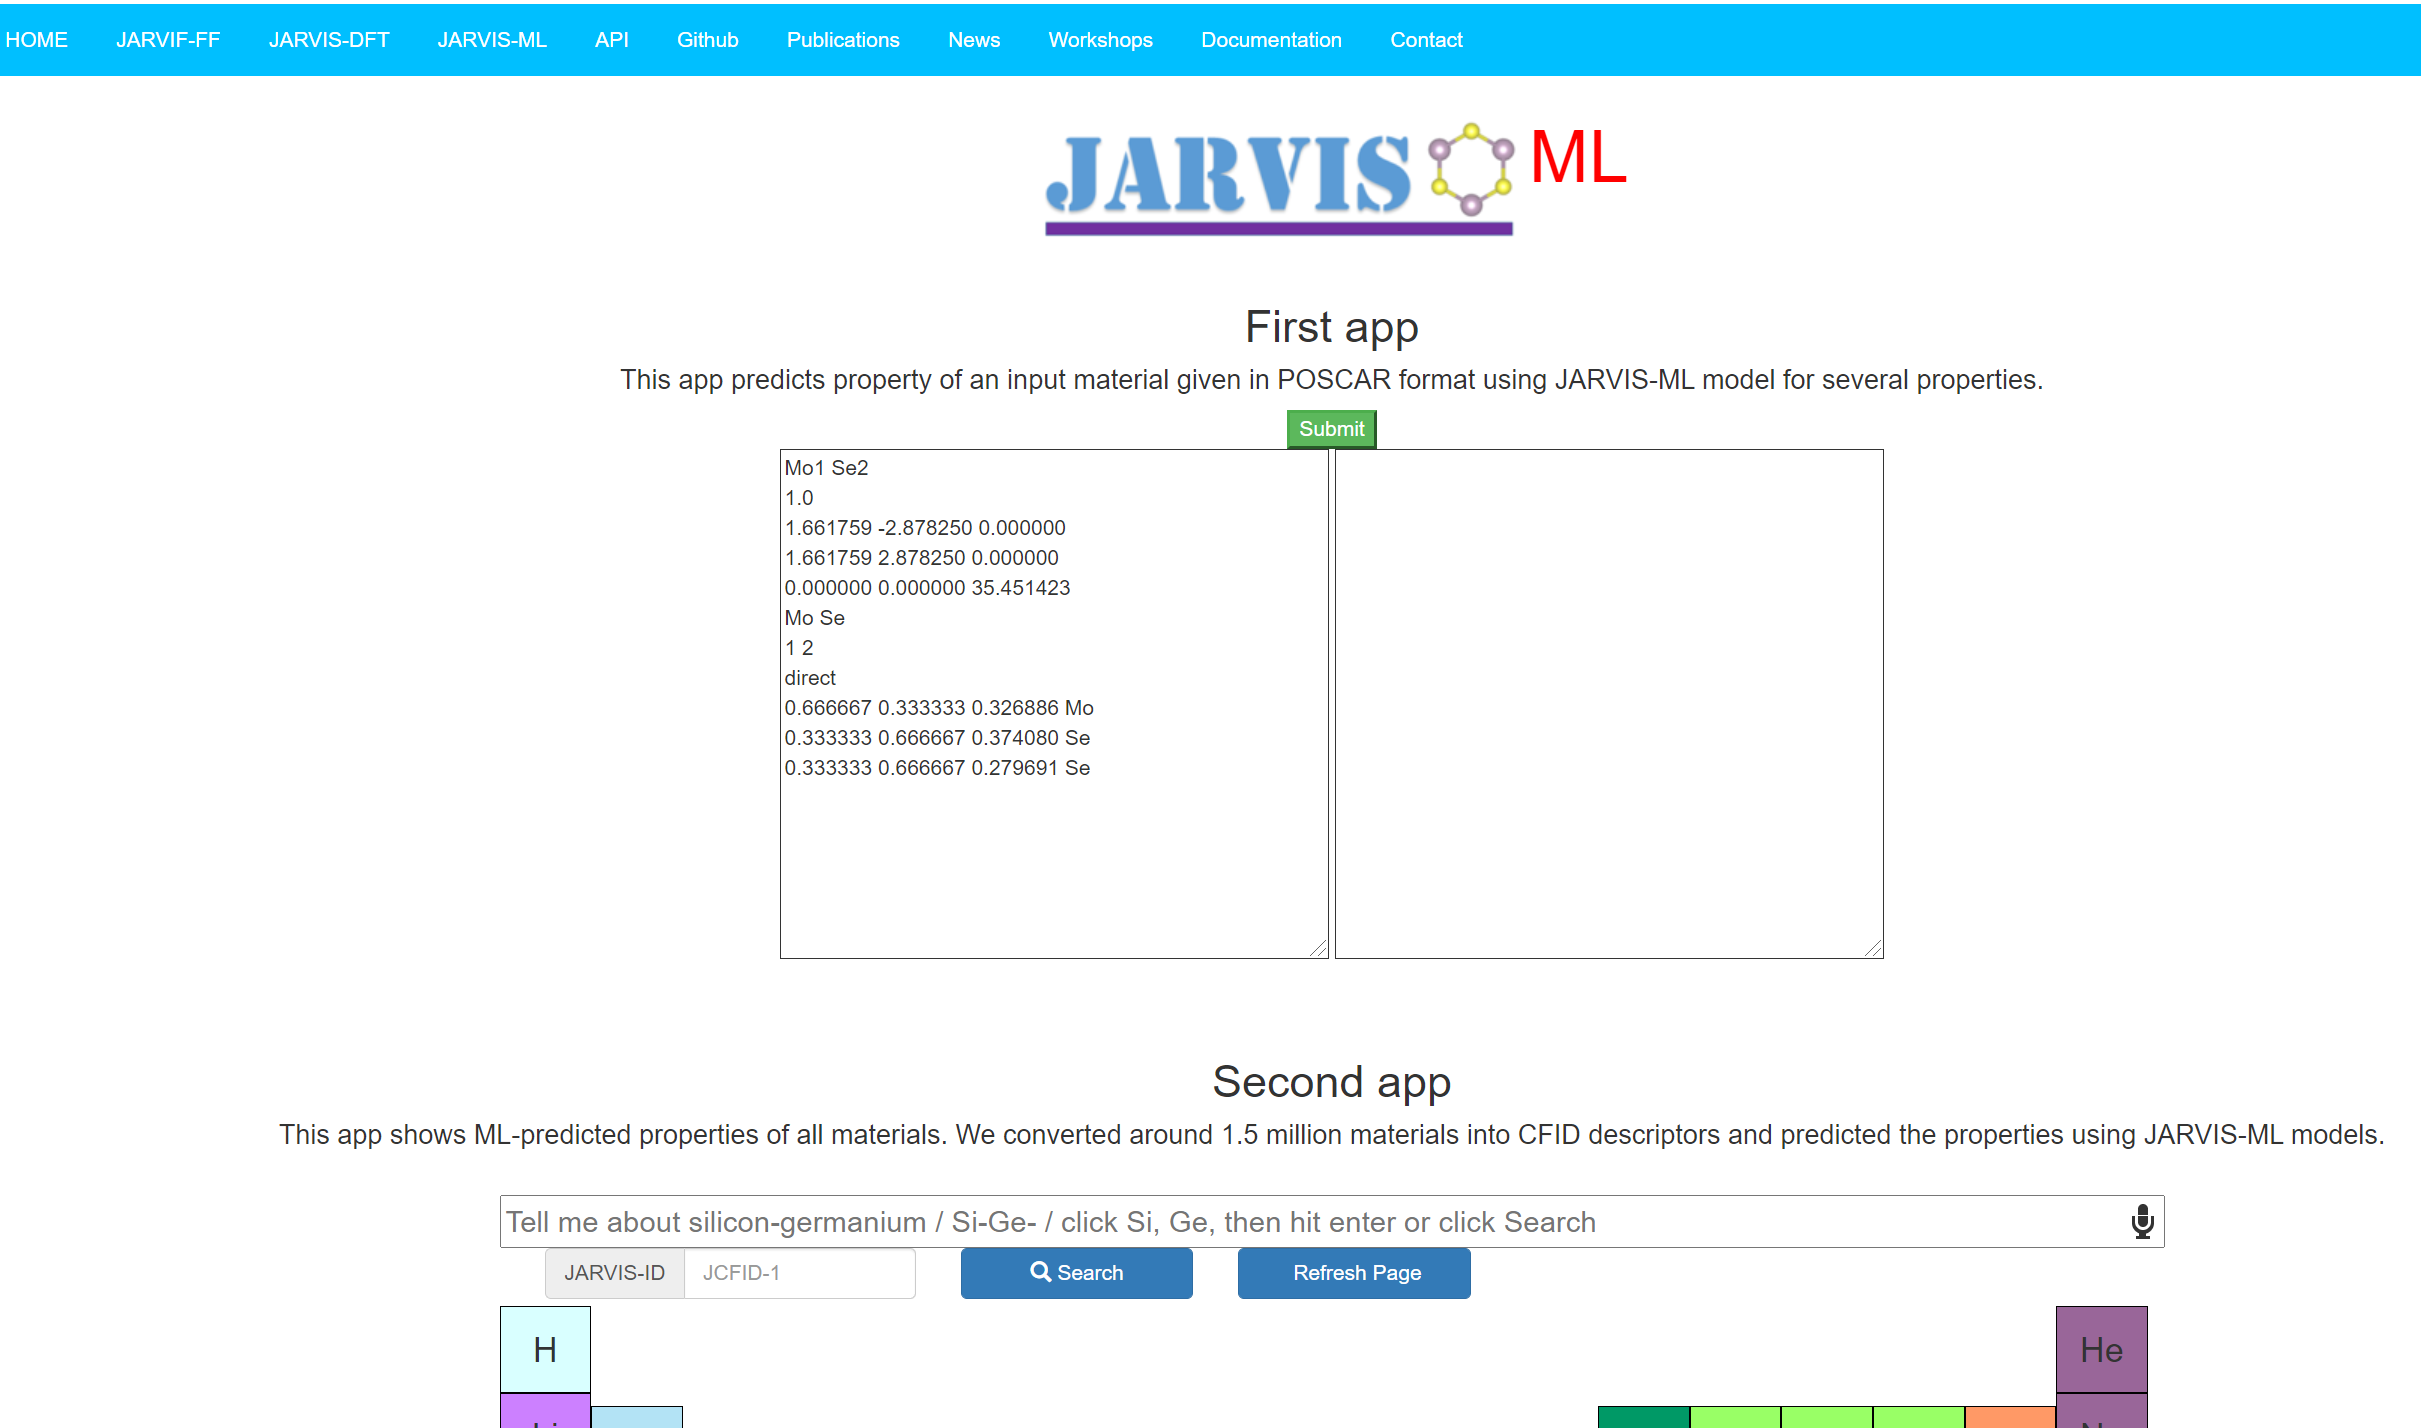 JARVIS-ML